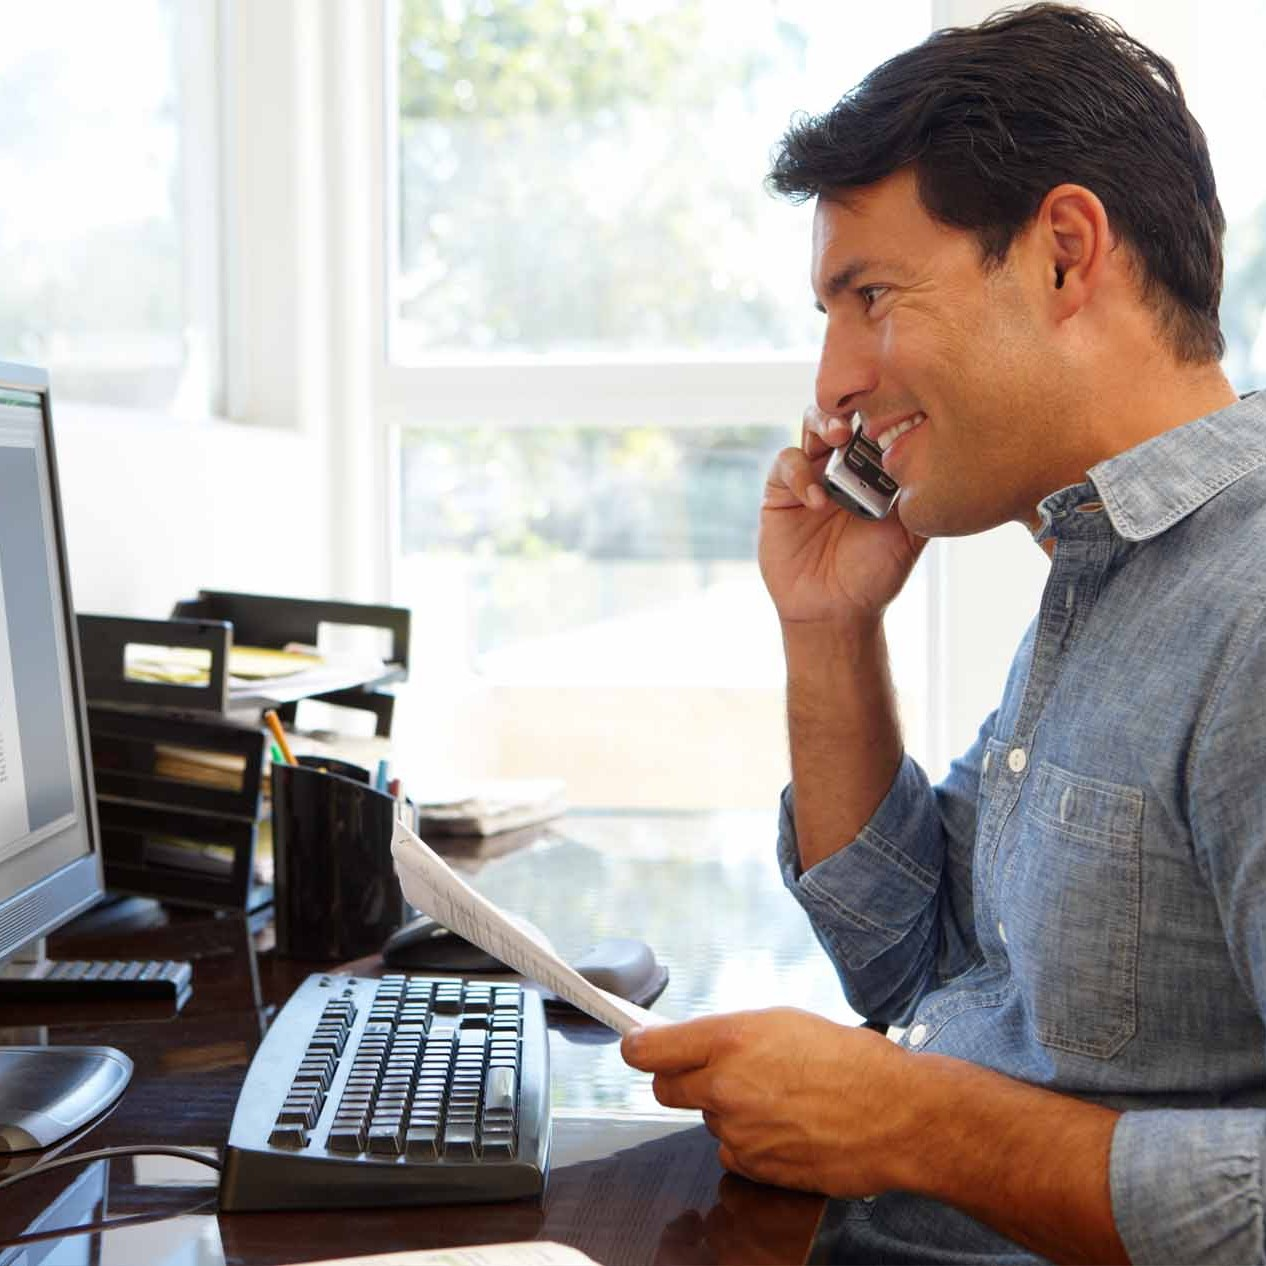 sales rep speaking on phone - small